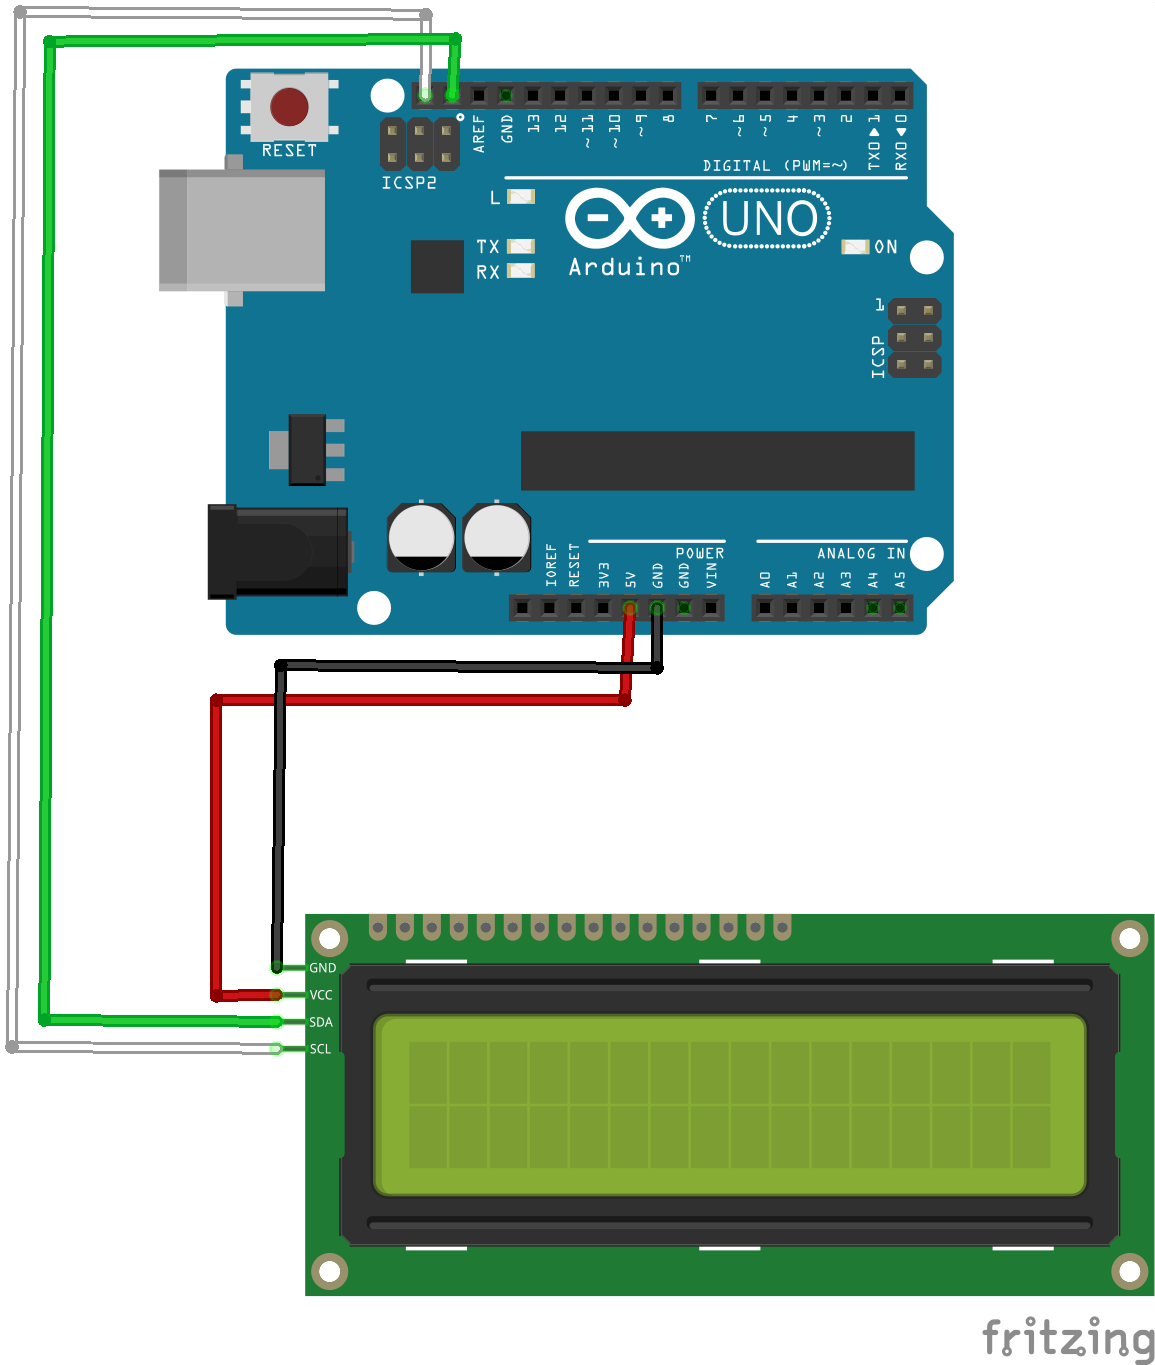 Tutorial Serial Connection Between Java Application And Arduino Uno Wiring Fritzing Files That Shows How To Wire An Lcm1602 Iic V1 Module